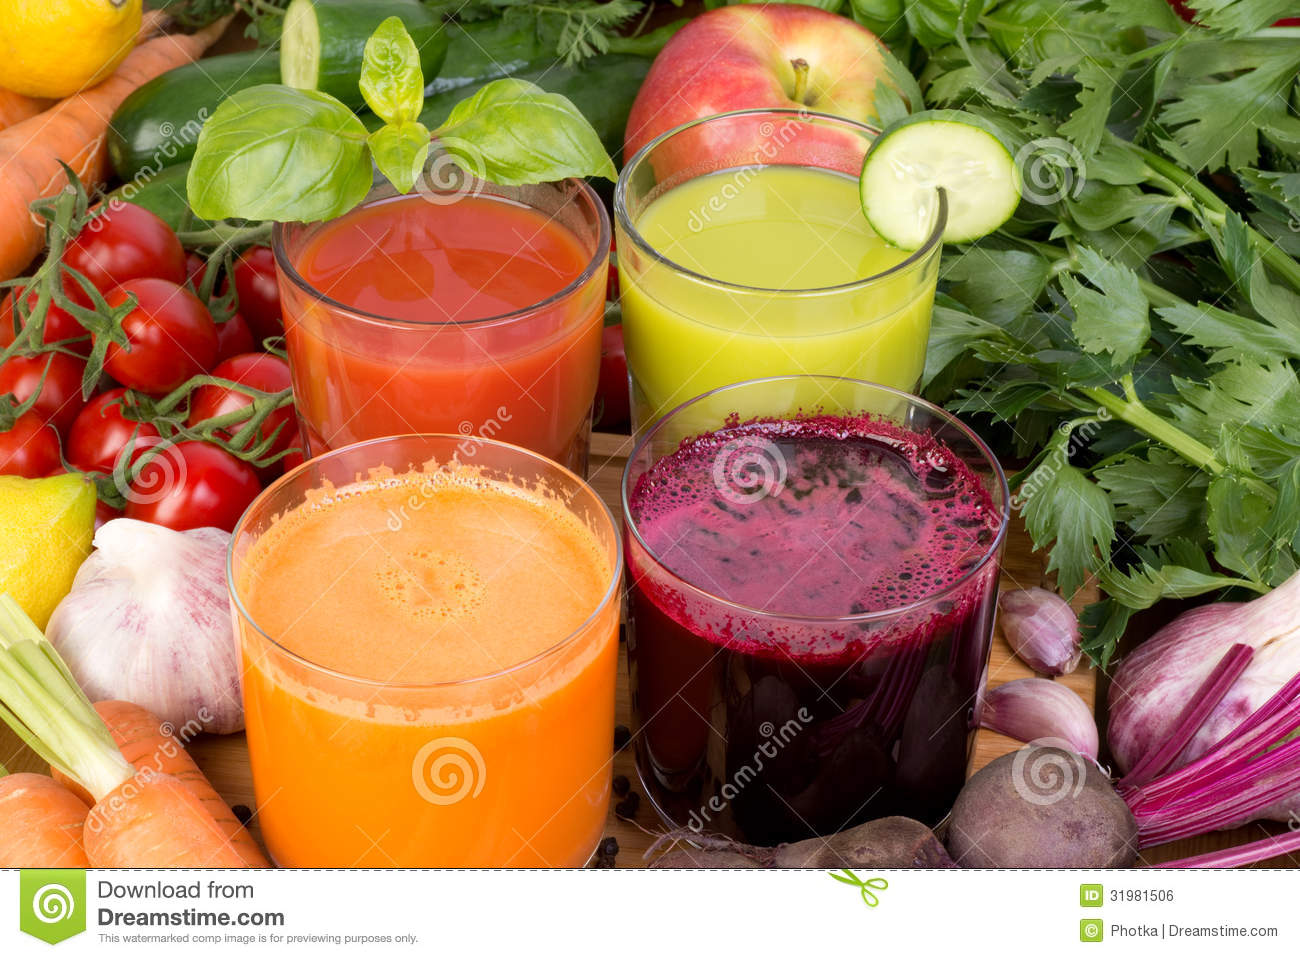 is a tomato a fruit or vegetable is fruit juice healthy